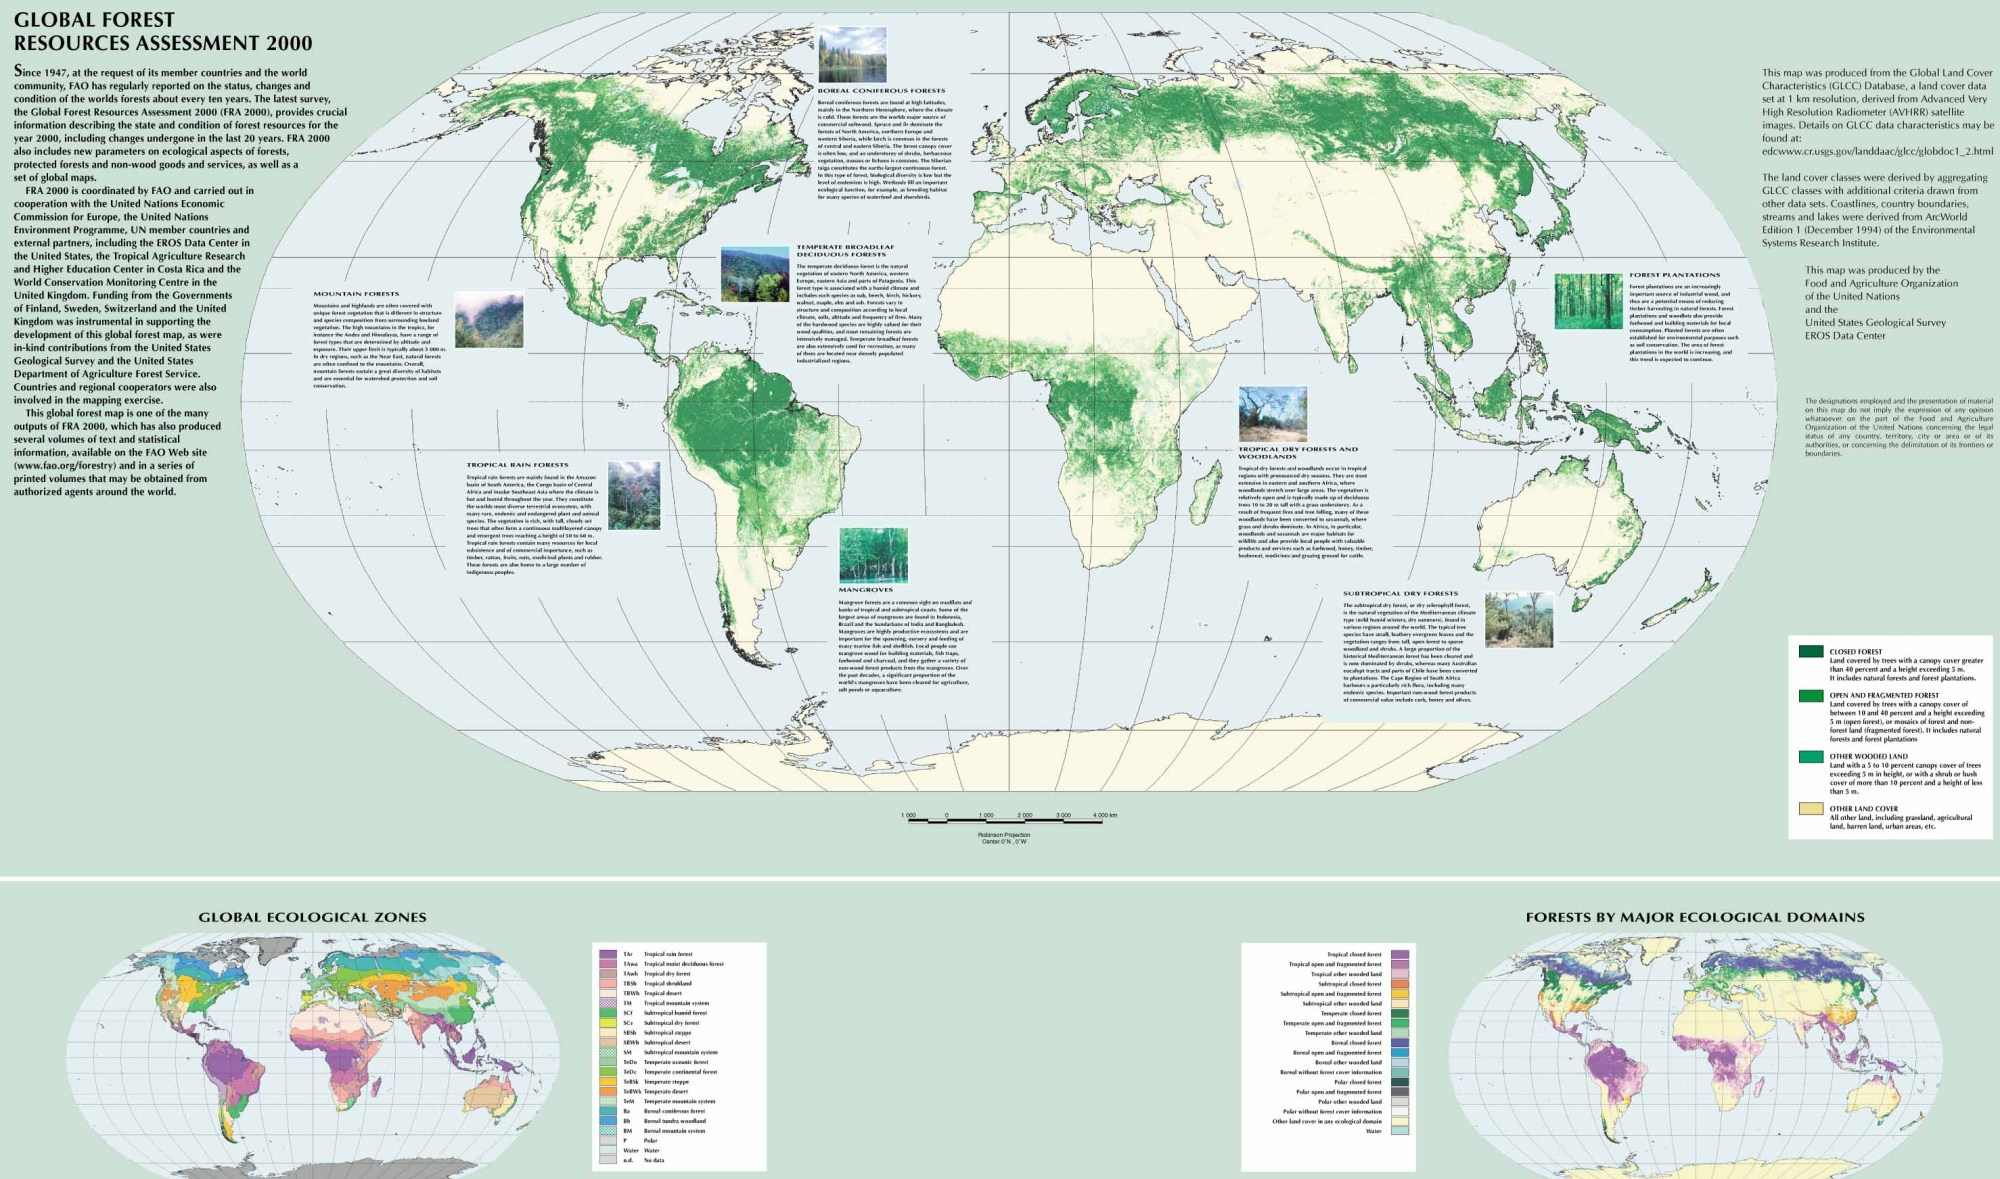 hight resolution of global forest resources assessment 2000 460 kb